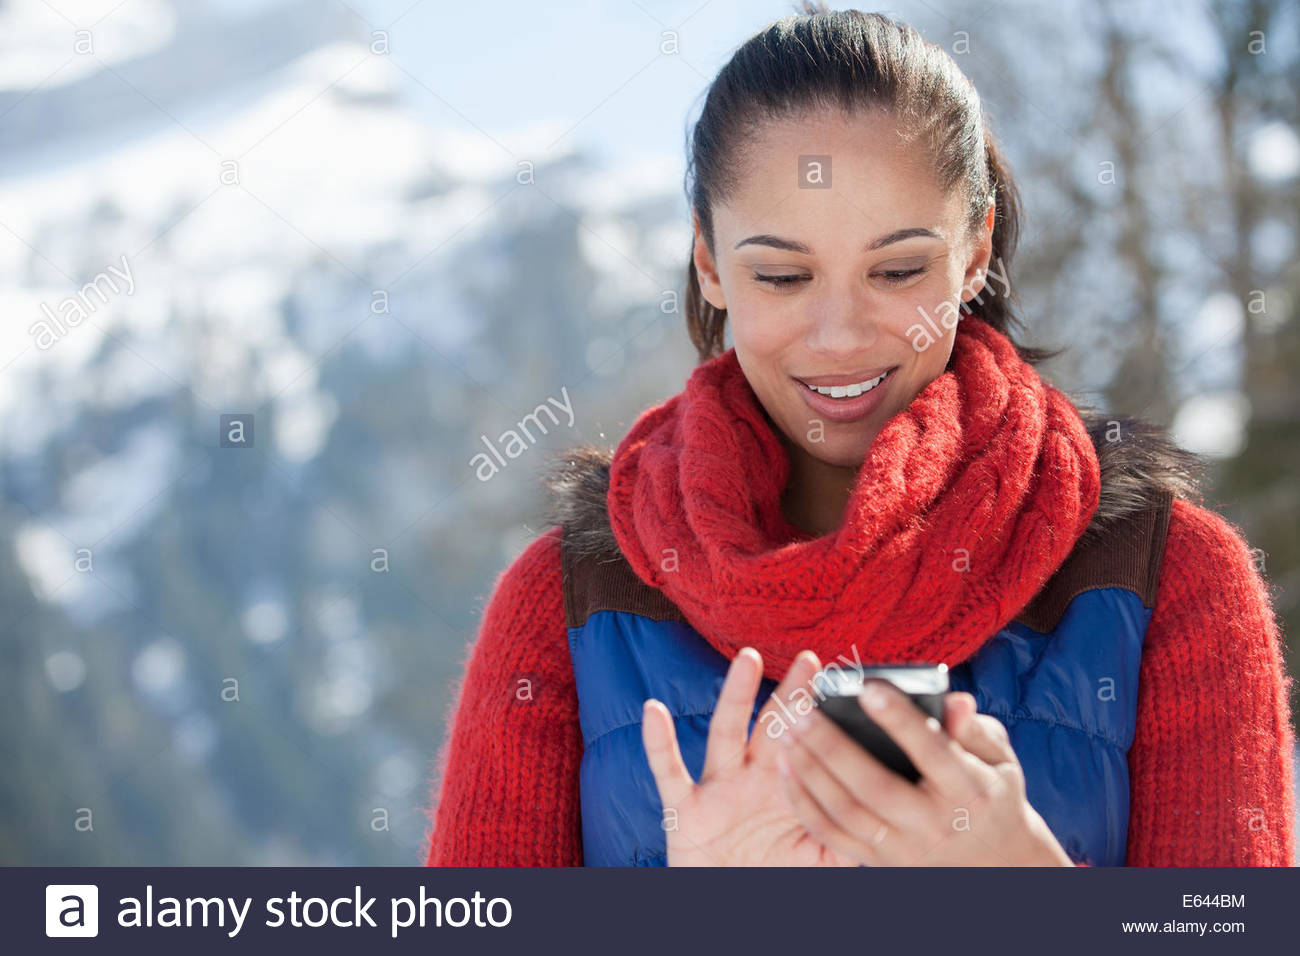 Smiling woman checking cell phone - Stock Image